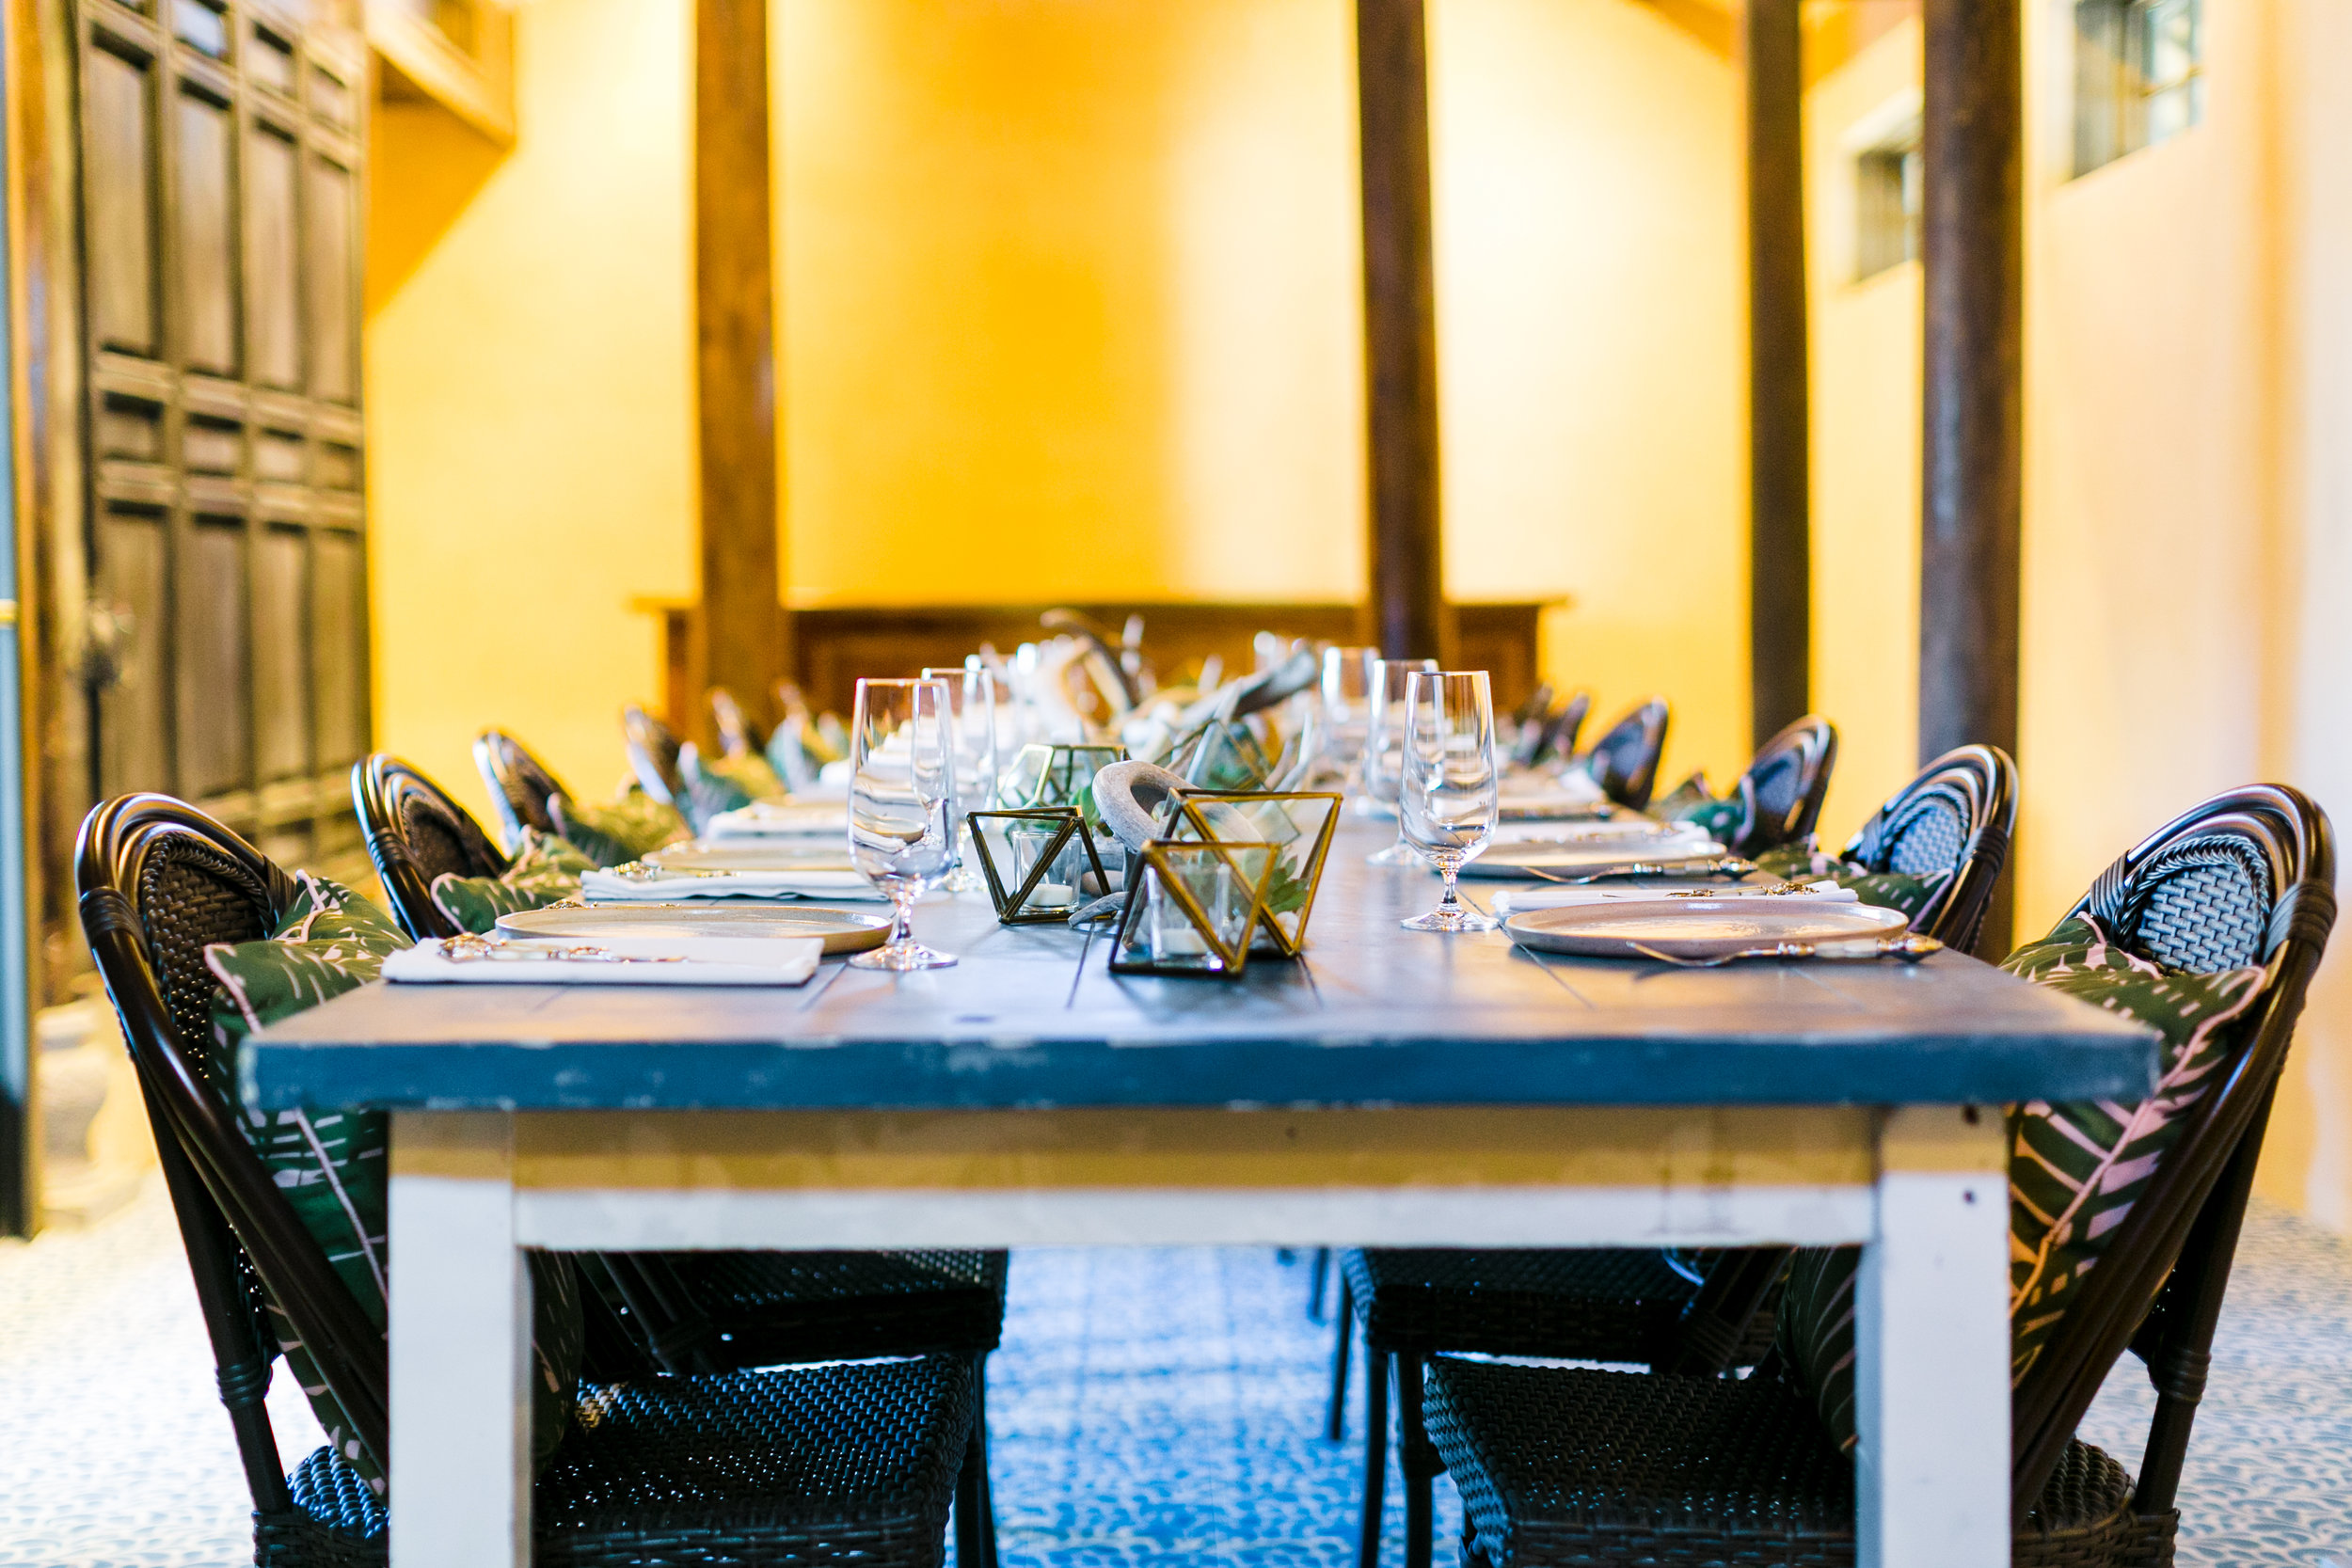 Mr. Kiem's - In addition to our main dining room, Tillie's offers a private dining room, complete with reserved outdoor space, flexible enough to host intimate meals, corporate meetings or rehearsal diners. The meeting space at Mr. Kiem's can comfortably sit as many as 20 guests.